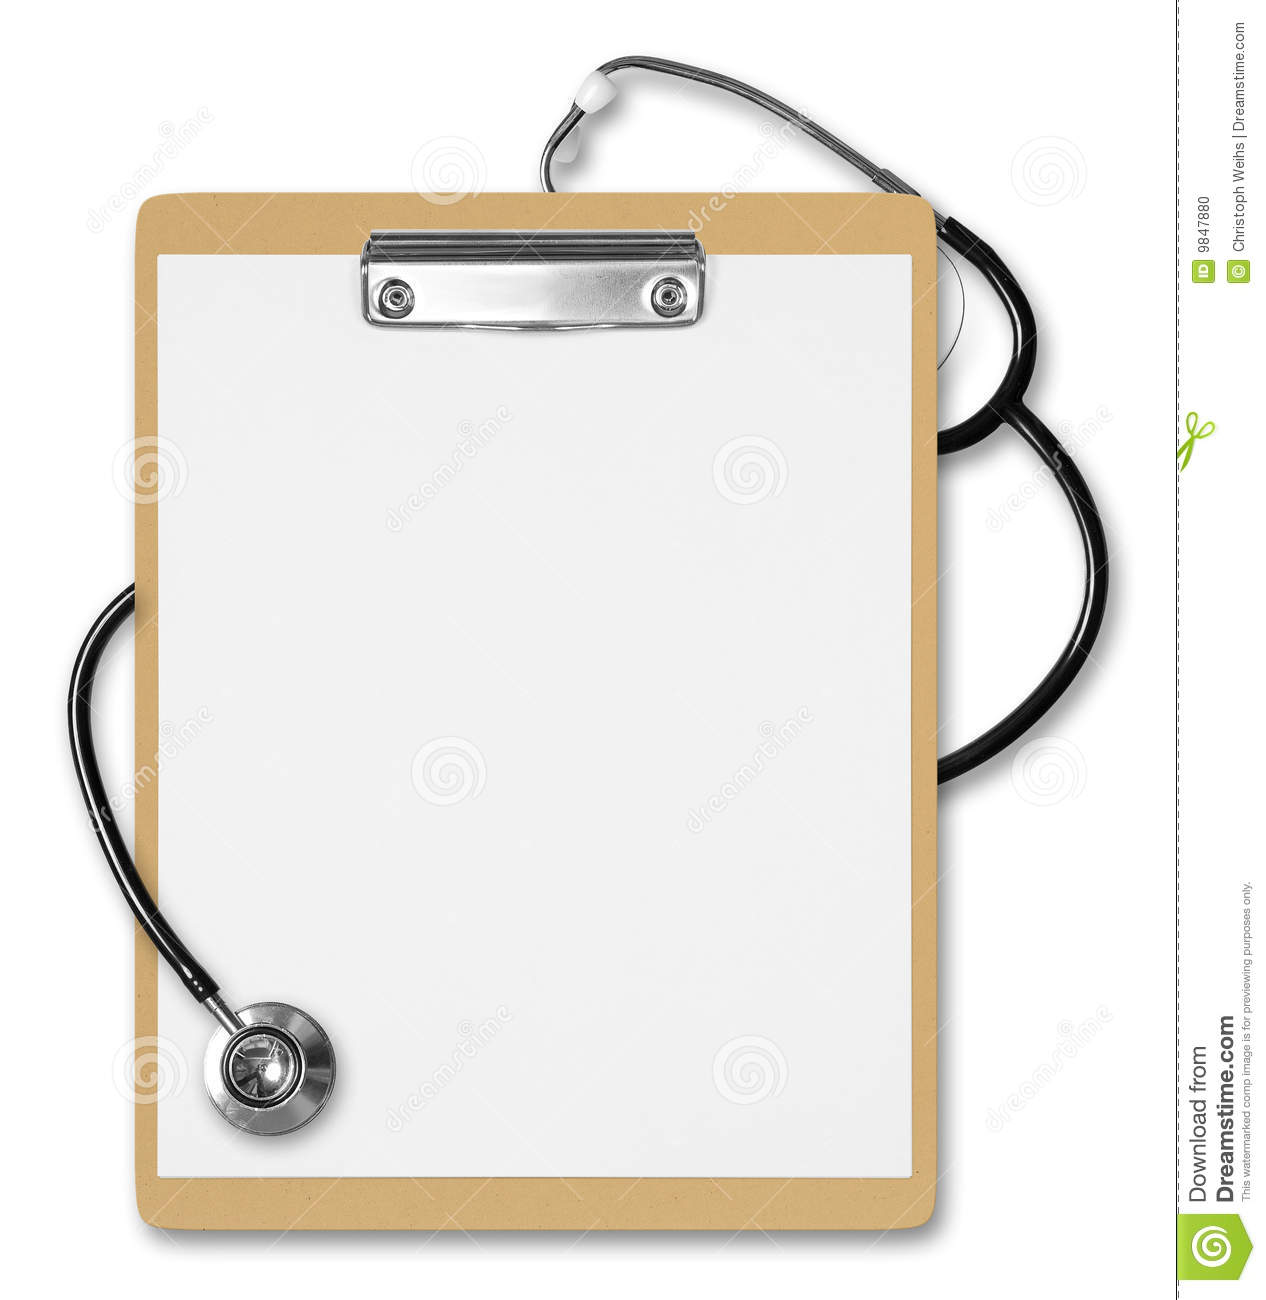 Clipboard Stethoscope Stock Photo Image 9847880